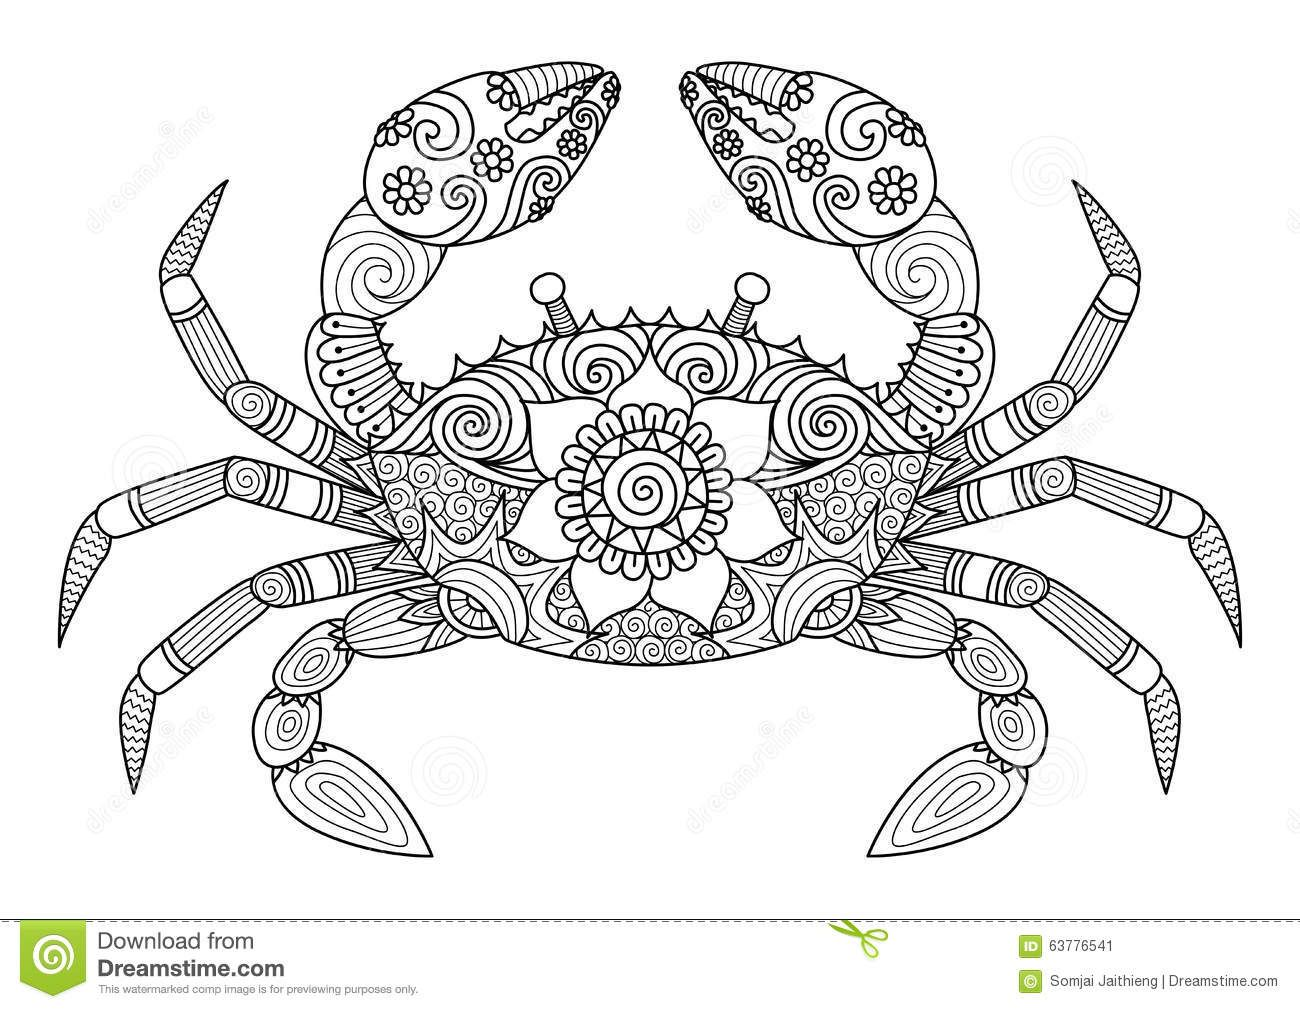 Colouring books for adults vancouver - Hand Drawn Crab Zentangle Style For Coloring Book For Adult Stock